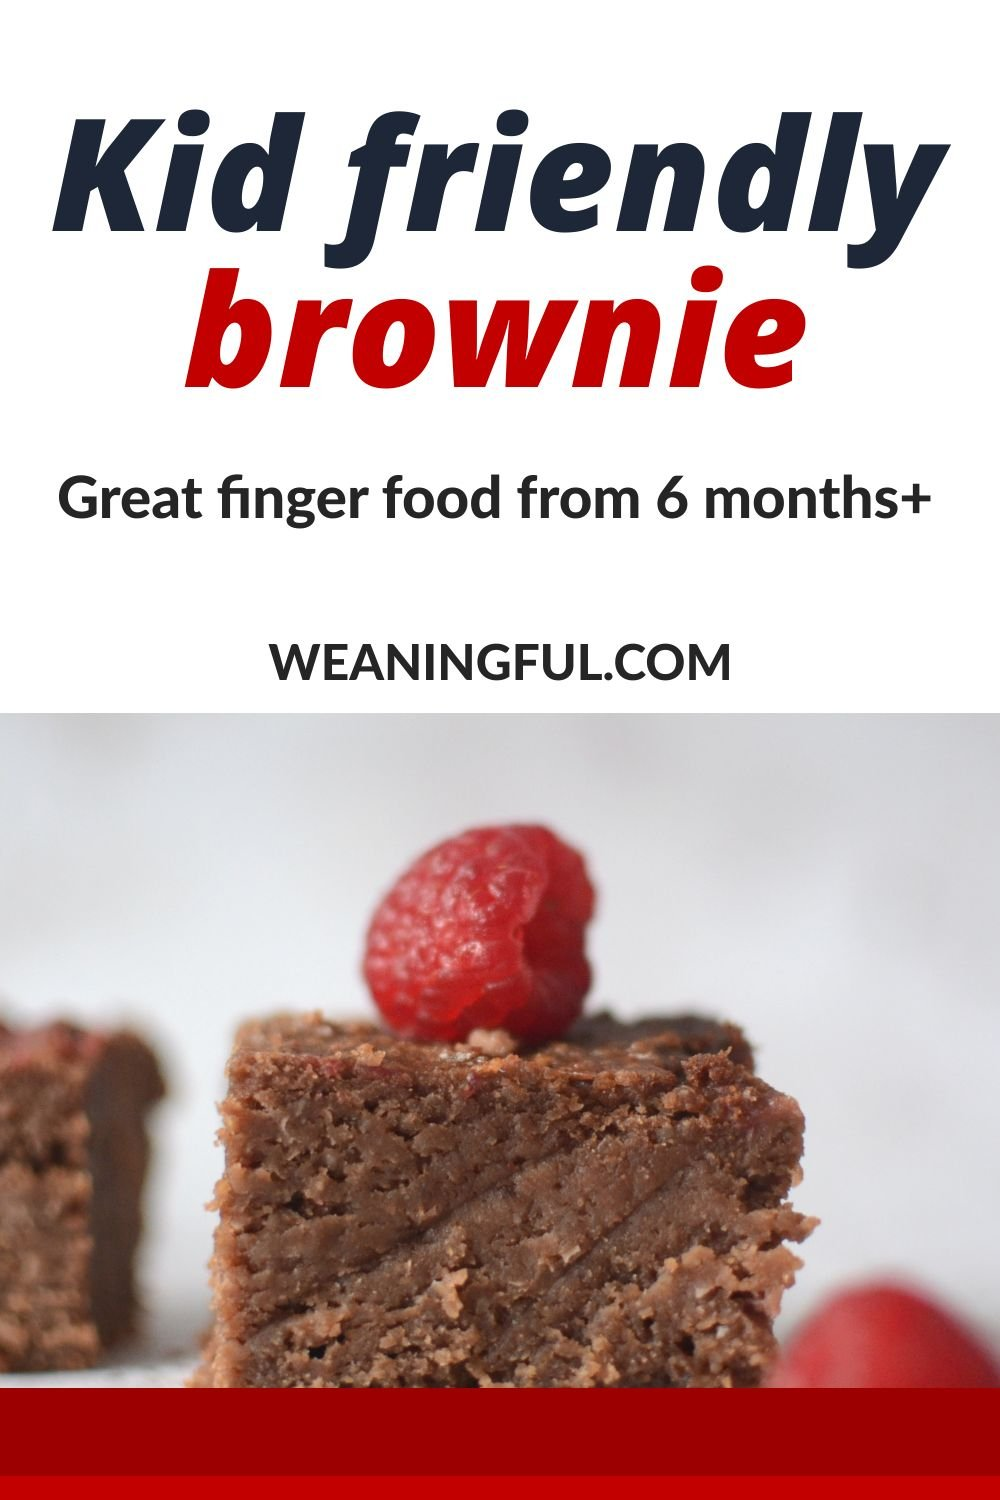 This kid friendly brownie is great for babies just starting solids at 6 months+, picky toddlers who like to eat like the grownups do or older kids who would like a healthy treat from time to time. Makes great finger food, even for babies with no teeth.